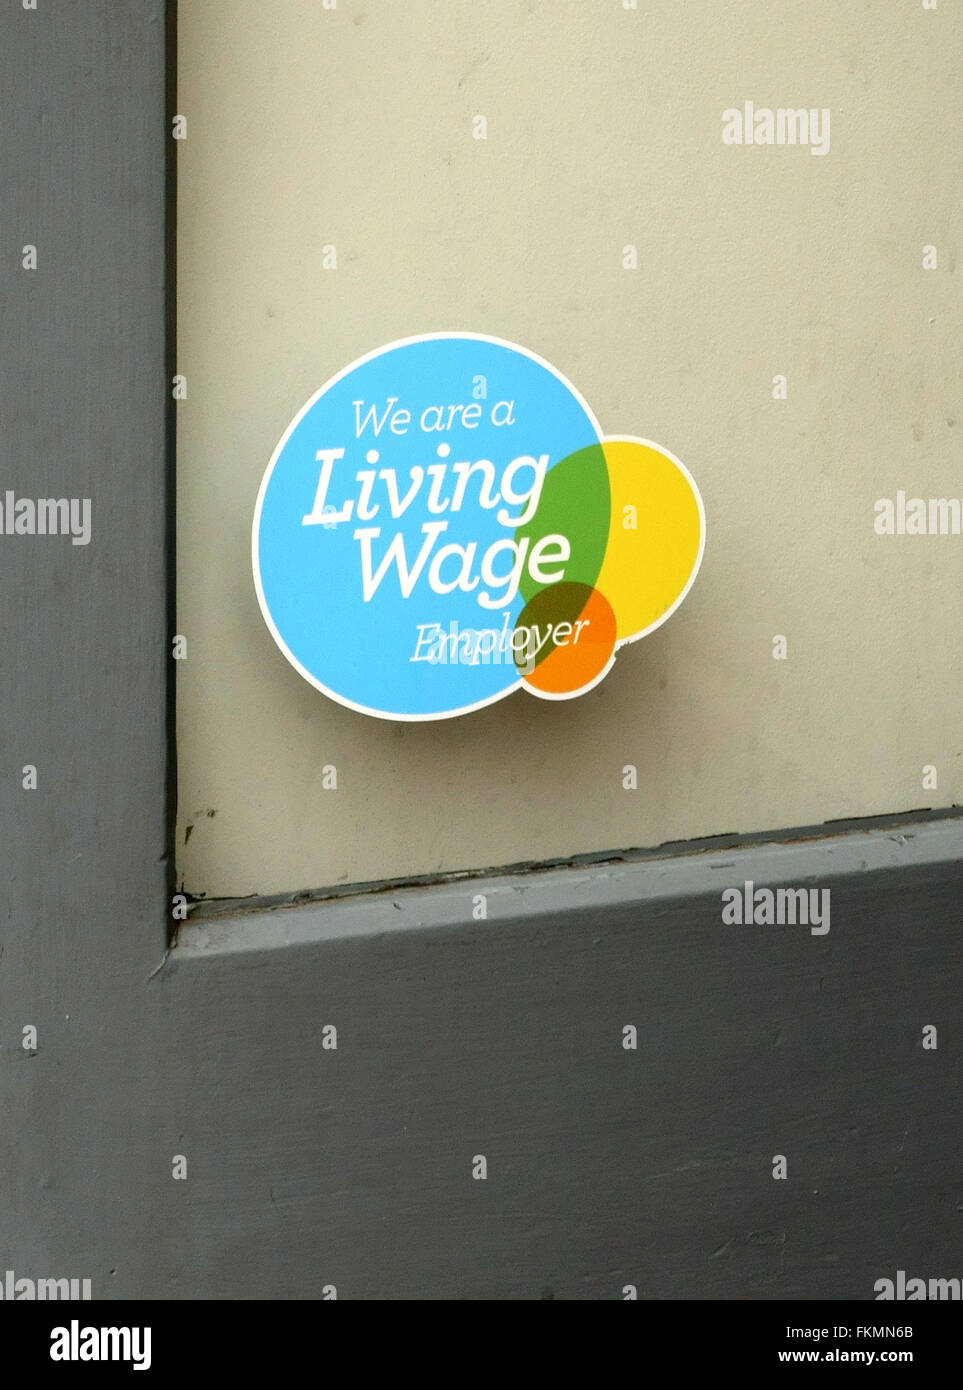 Living Wage Employer sign in Oliver Bonas shop window, Islington, London - Stock Image